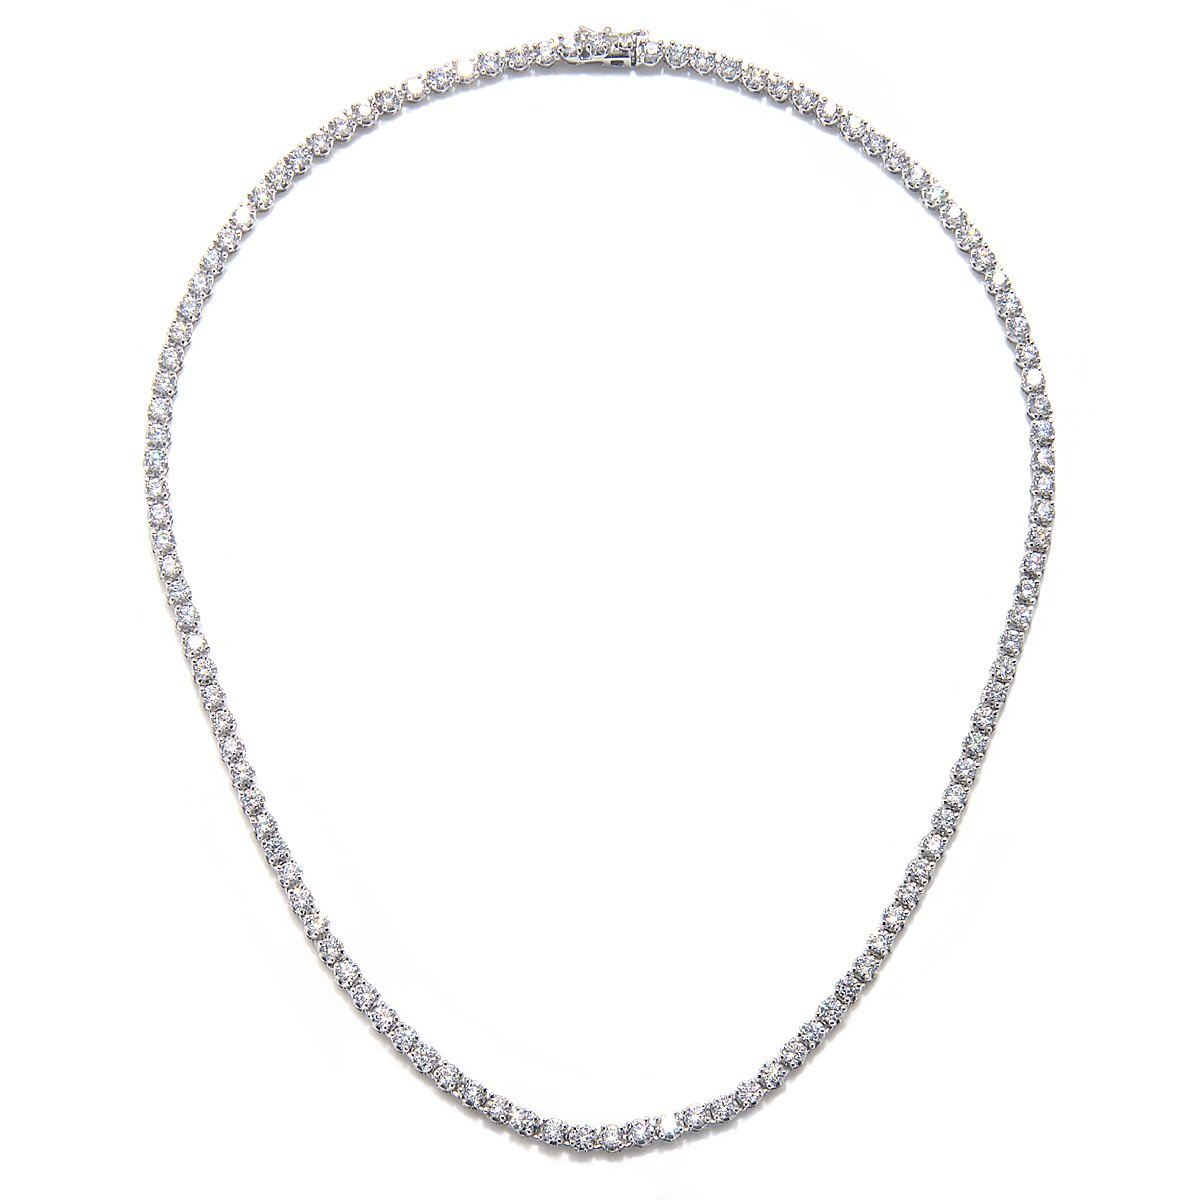 Rhodium Plated Silver White Cz 3mm Line Necklace-18